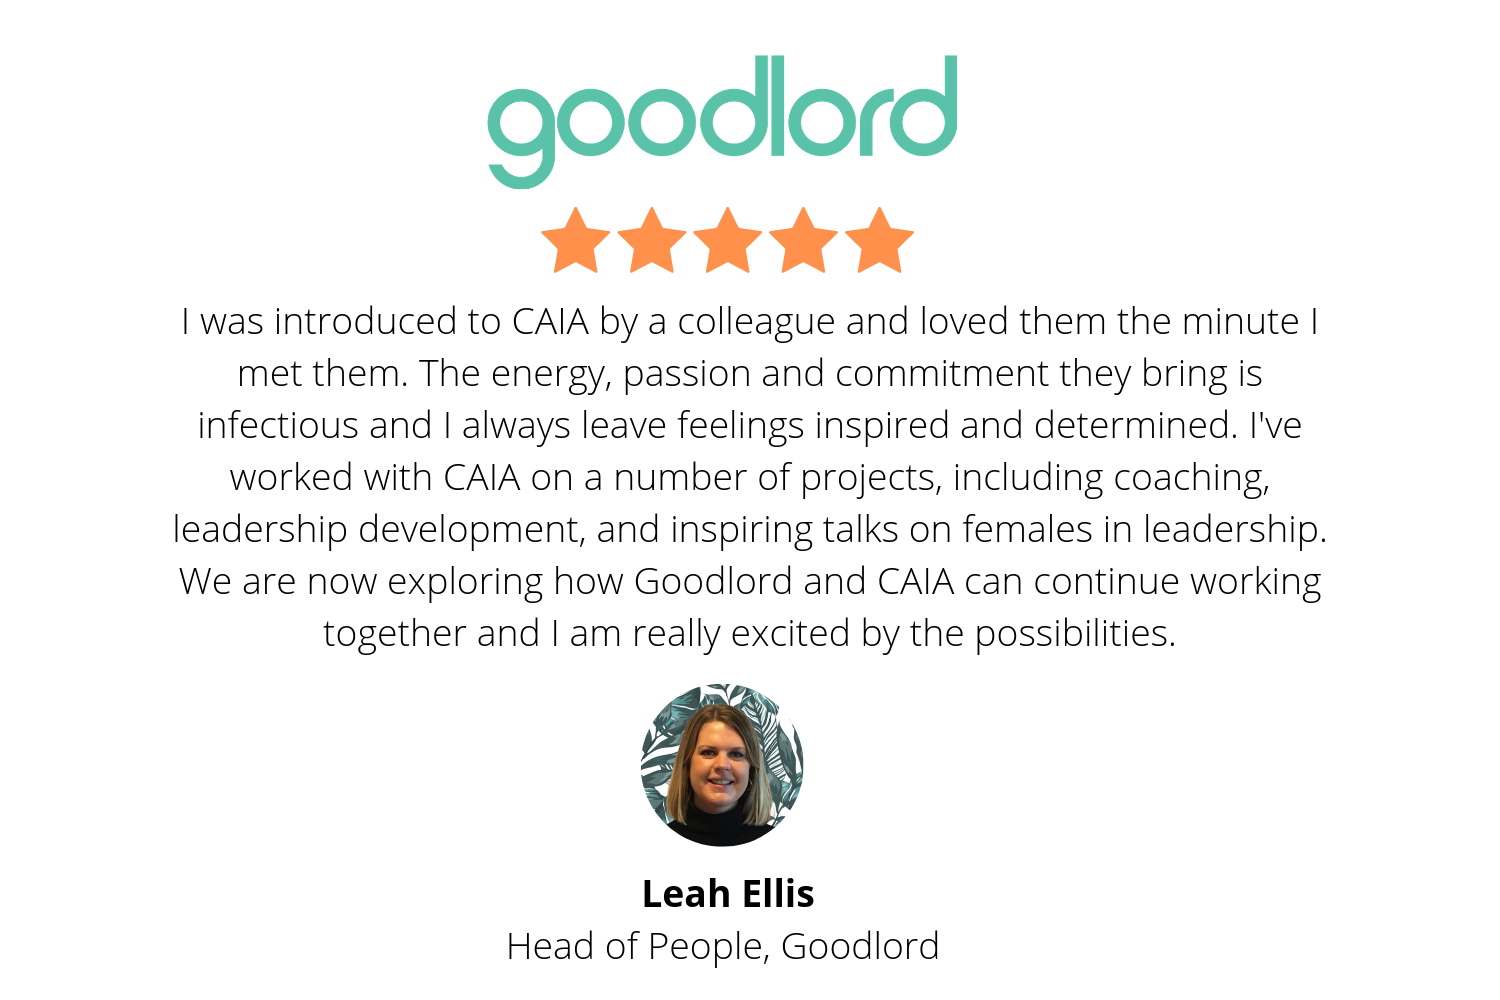 I was introduced to CAIA by a colleague and loved them the minute I met them. The energy, passion and commitment they bring is infectious and I always leave feelings inspired and determined. I've worked with CAIA on .png